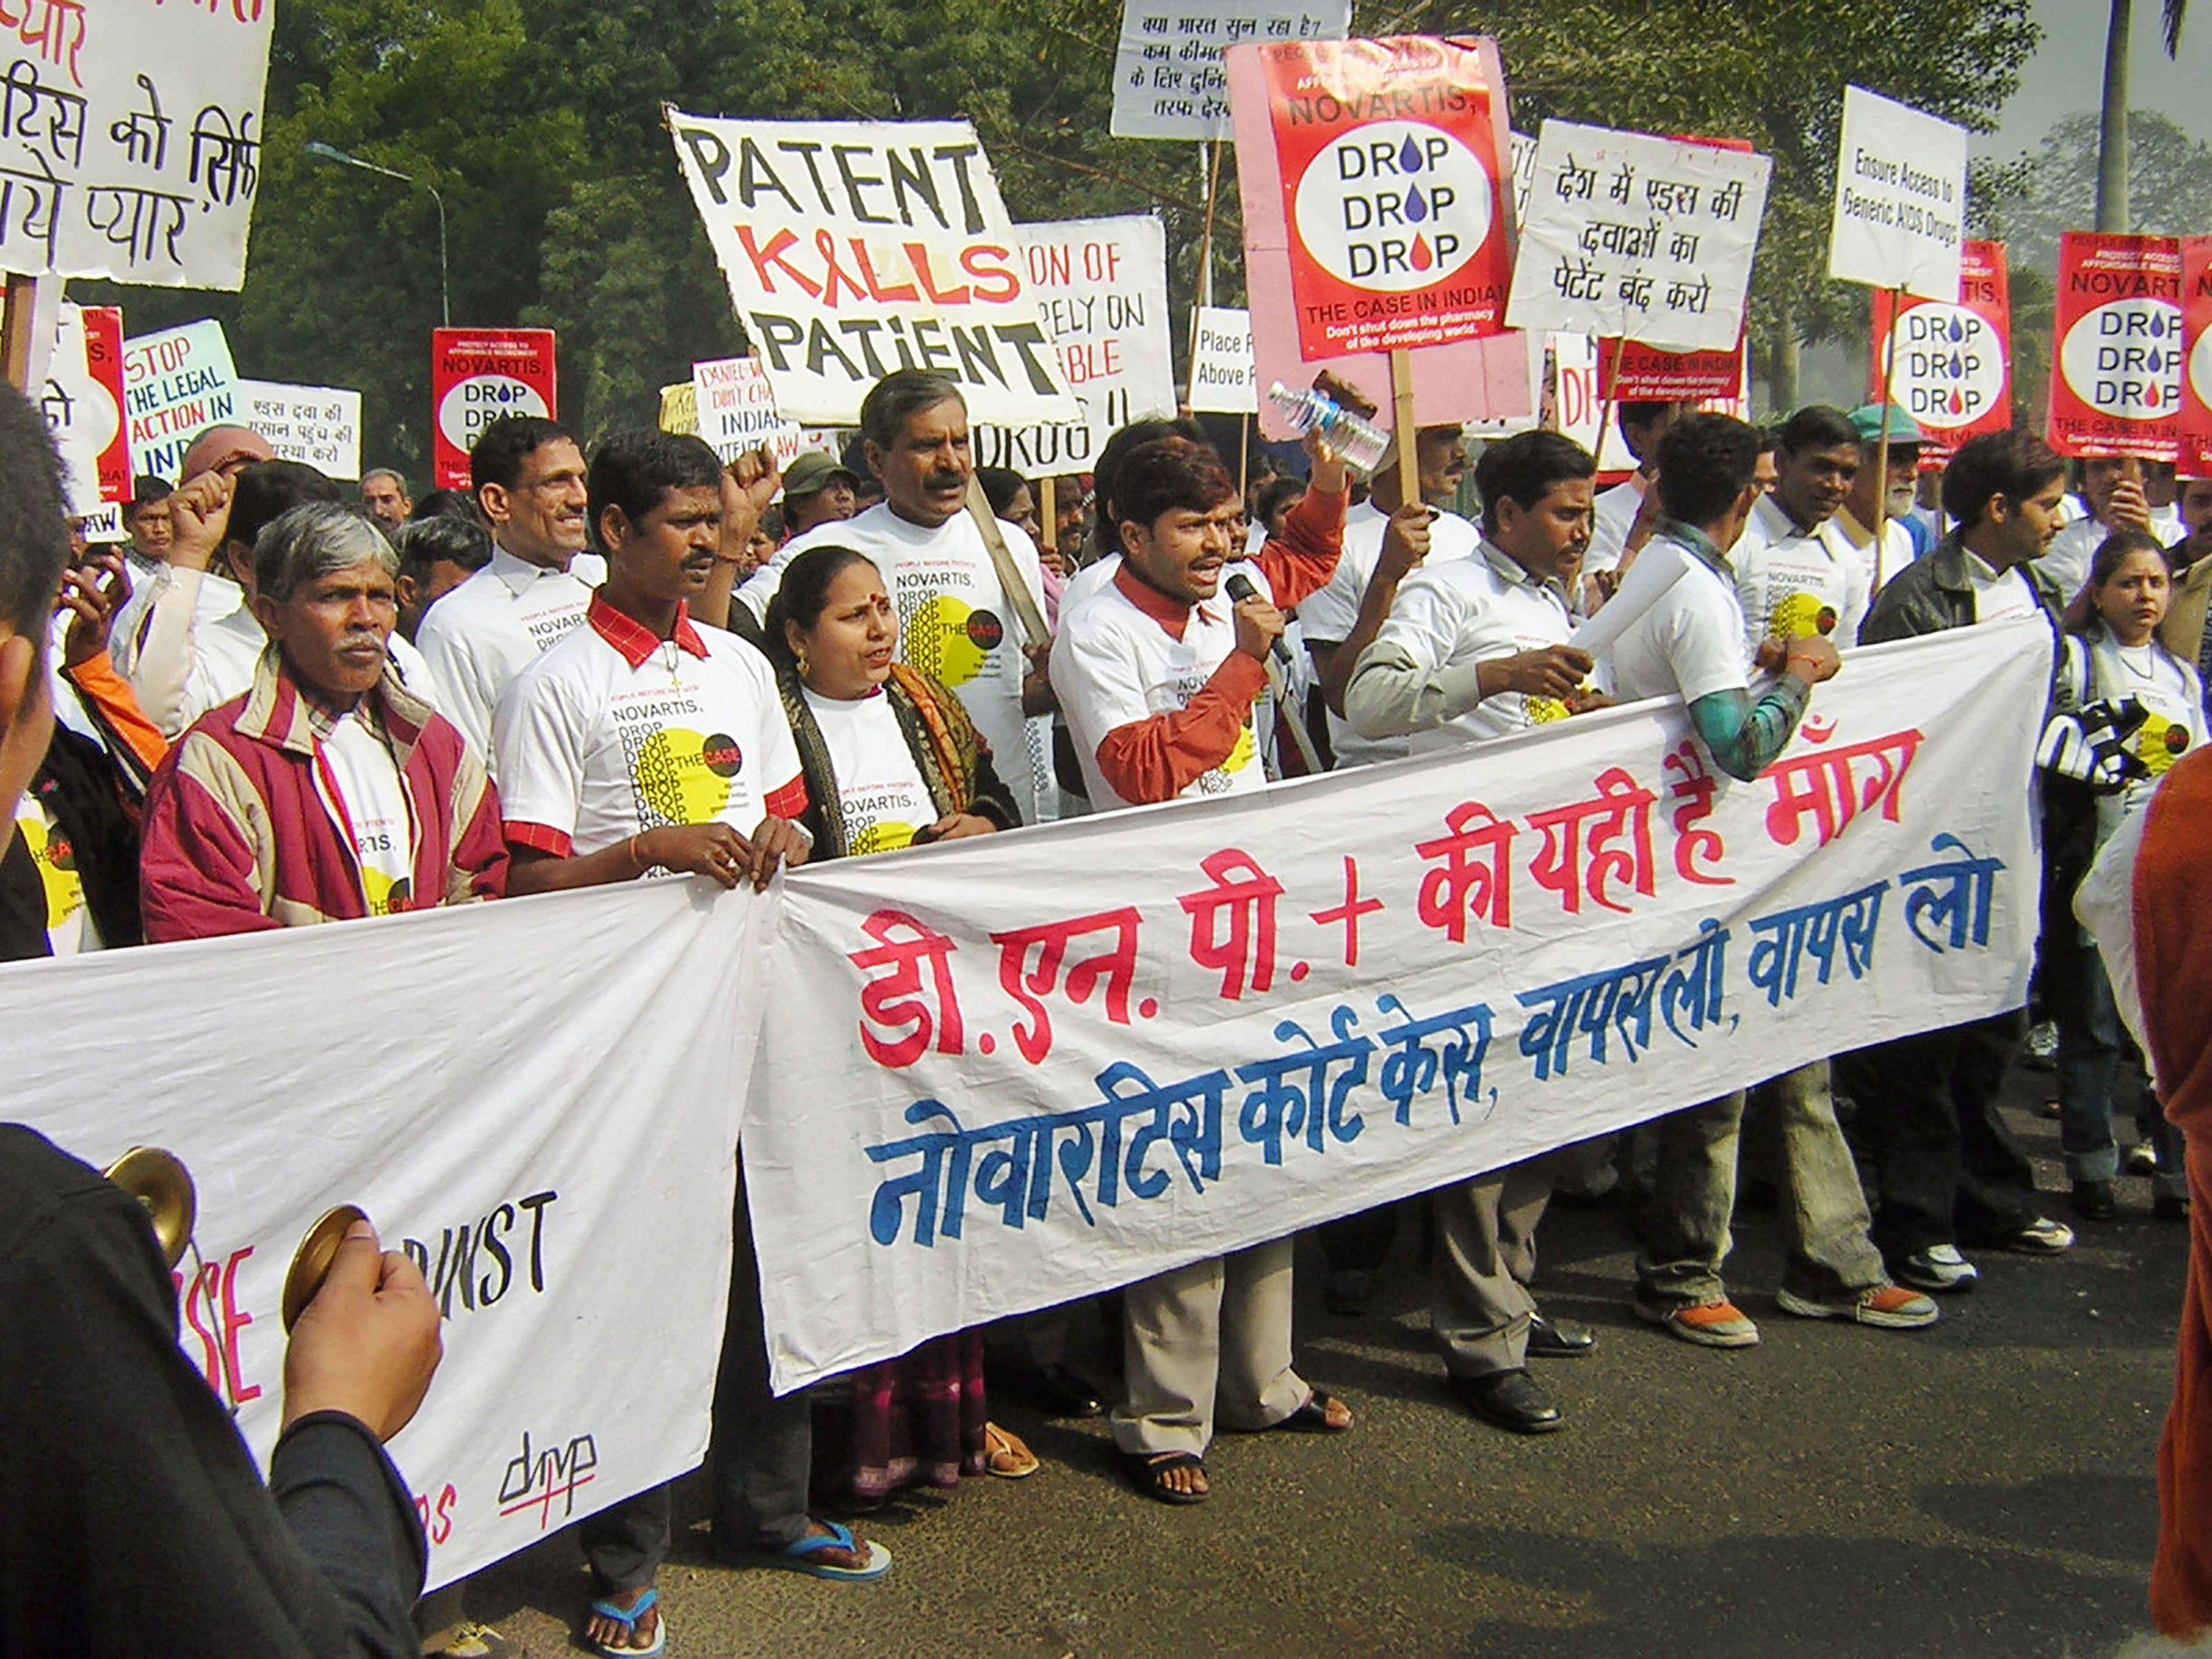 Hundreds of Indian activists protested in New Delhi on Monday against a challenge to the country's patent law by Swiss pharmaceutical giant Novartis.